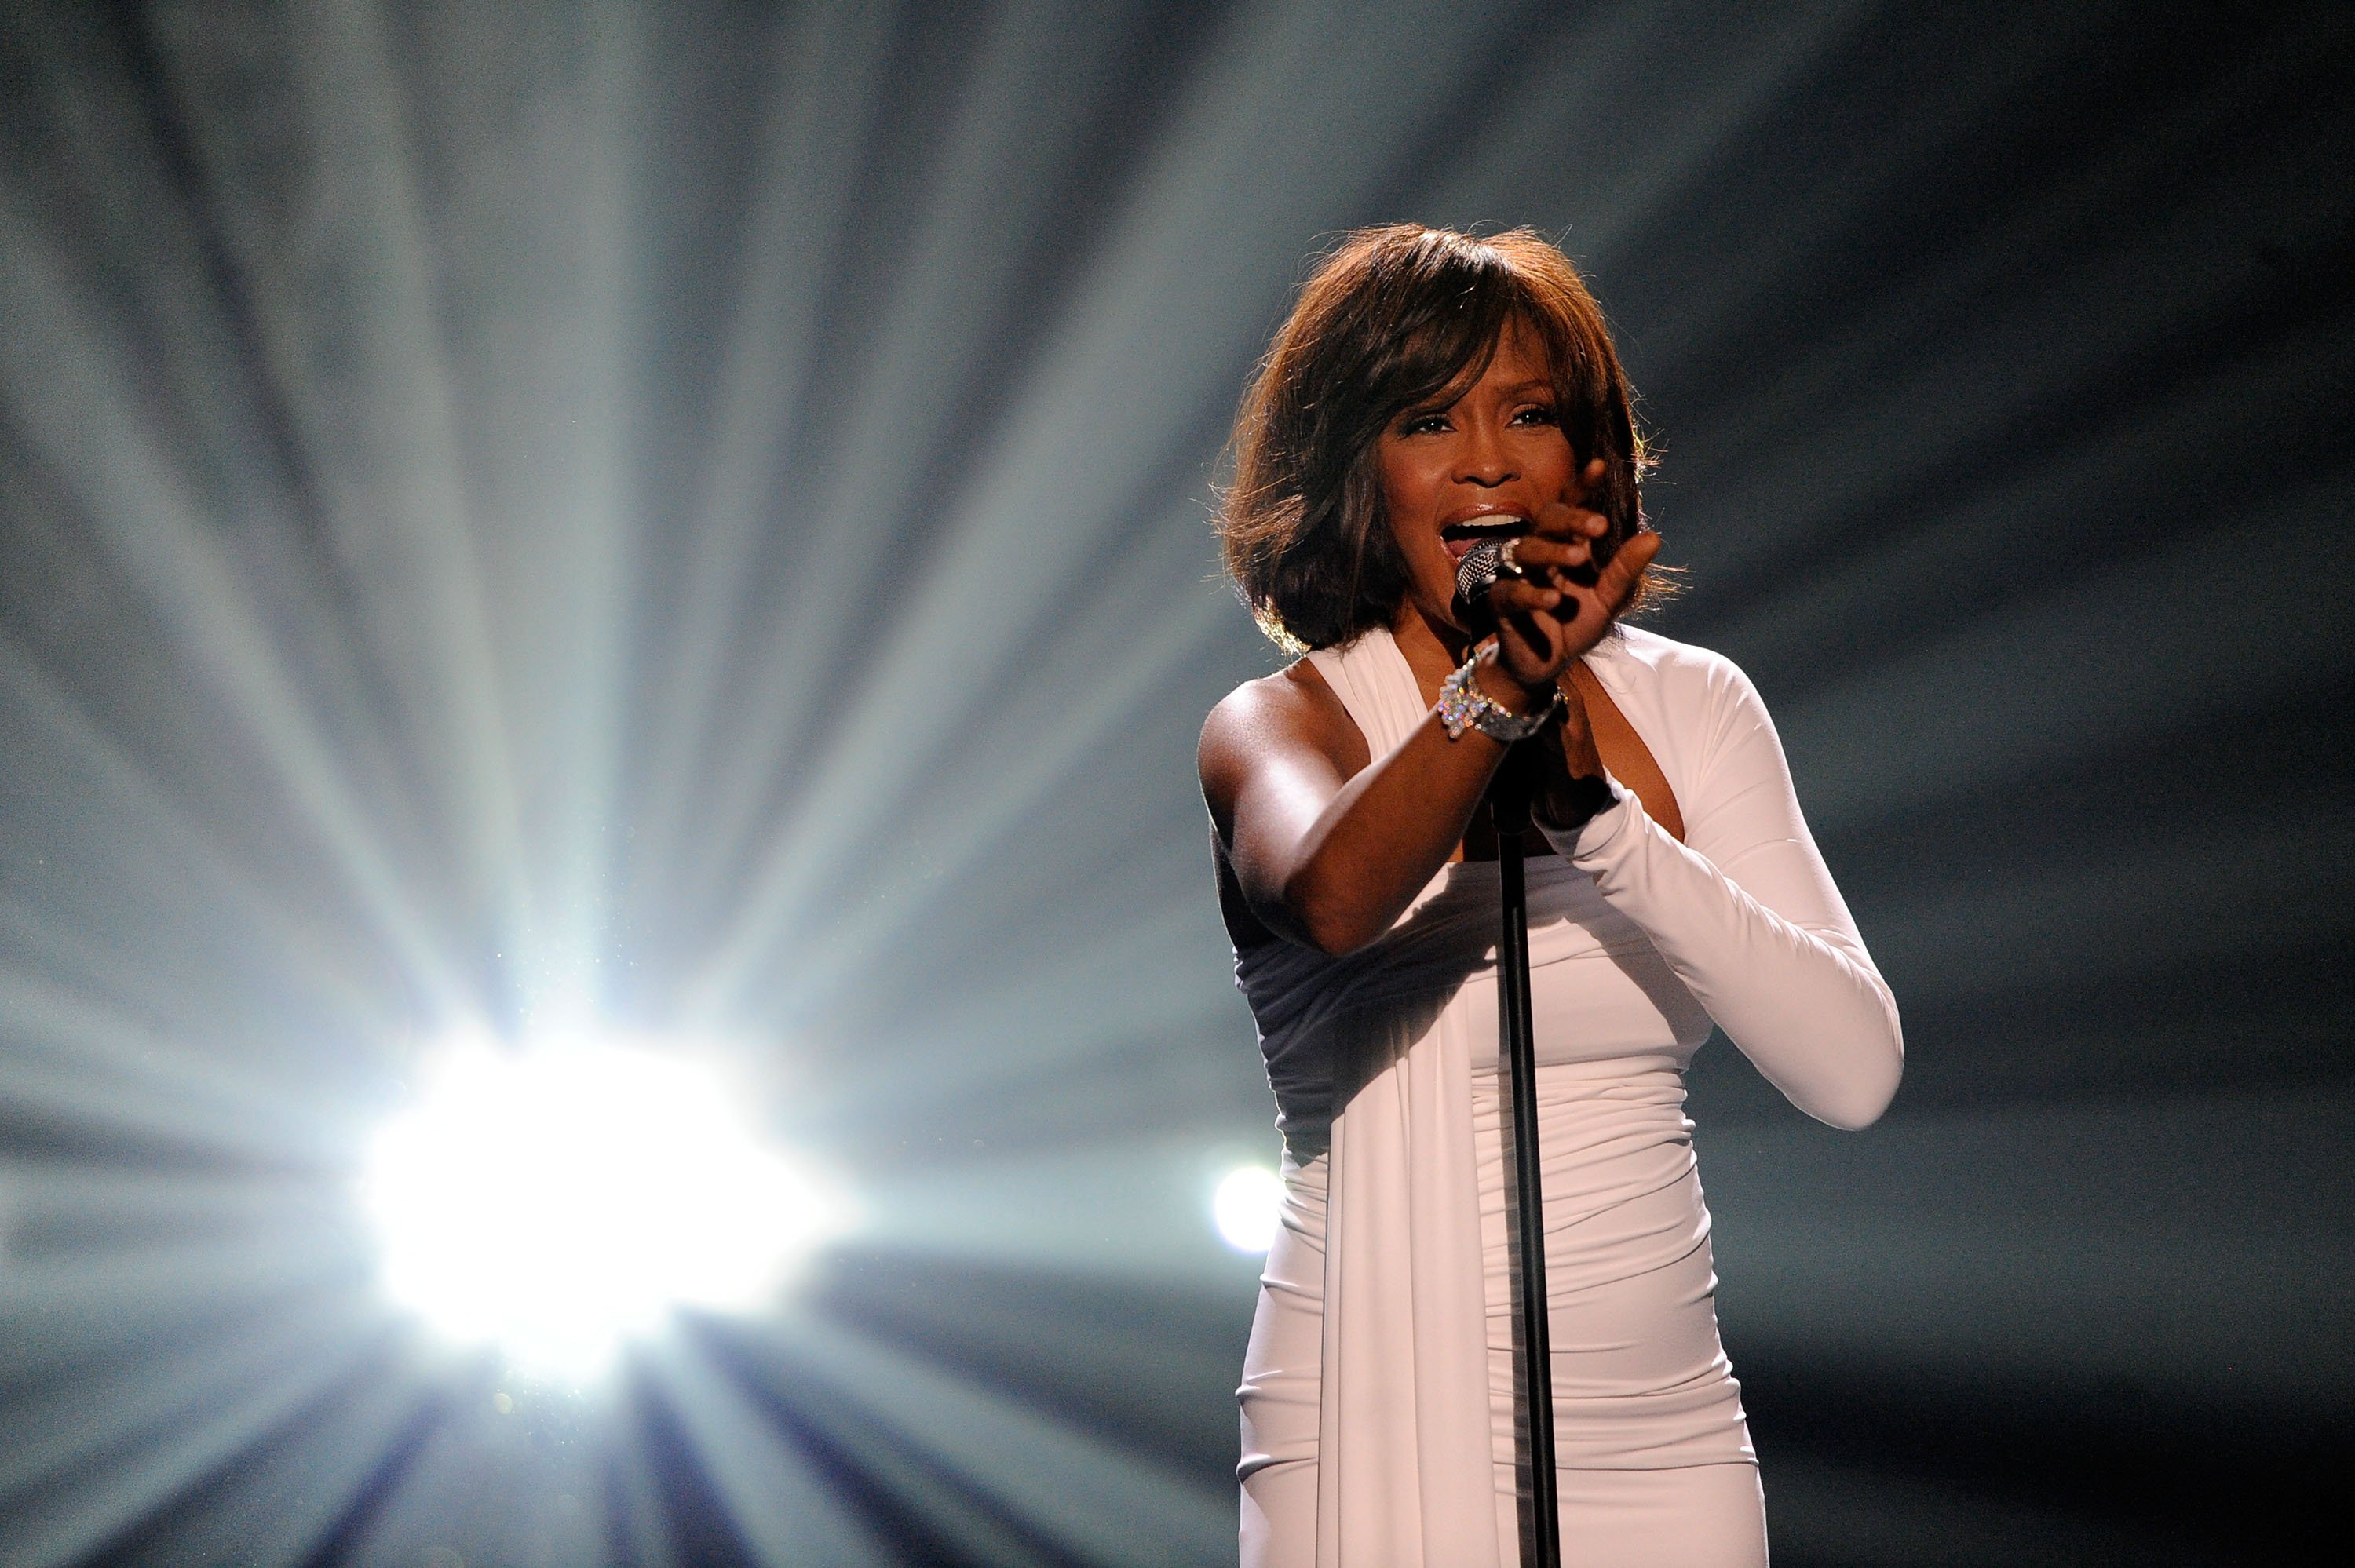 Whitney Houston at the 2009 American Music Awards on Nov. 22, 2009 in California | Photo: Getty Images